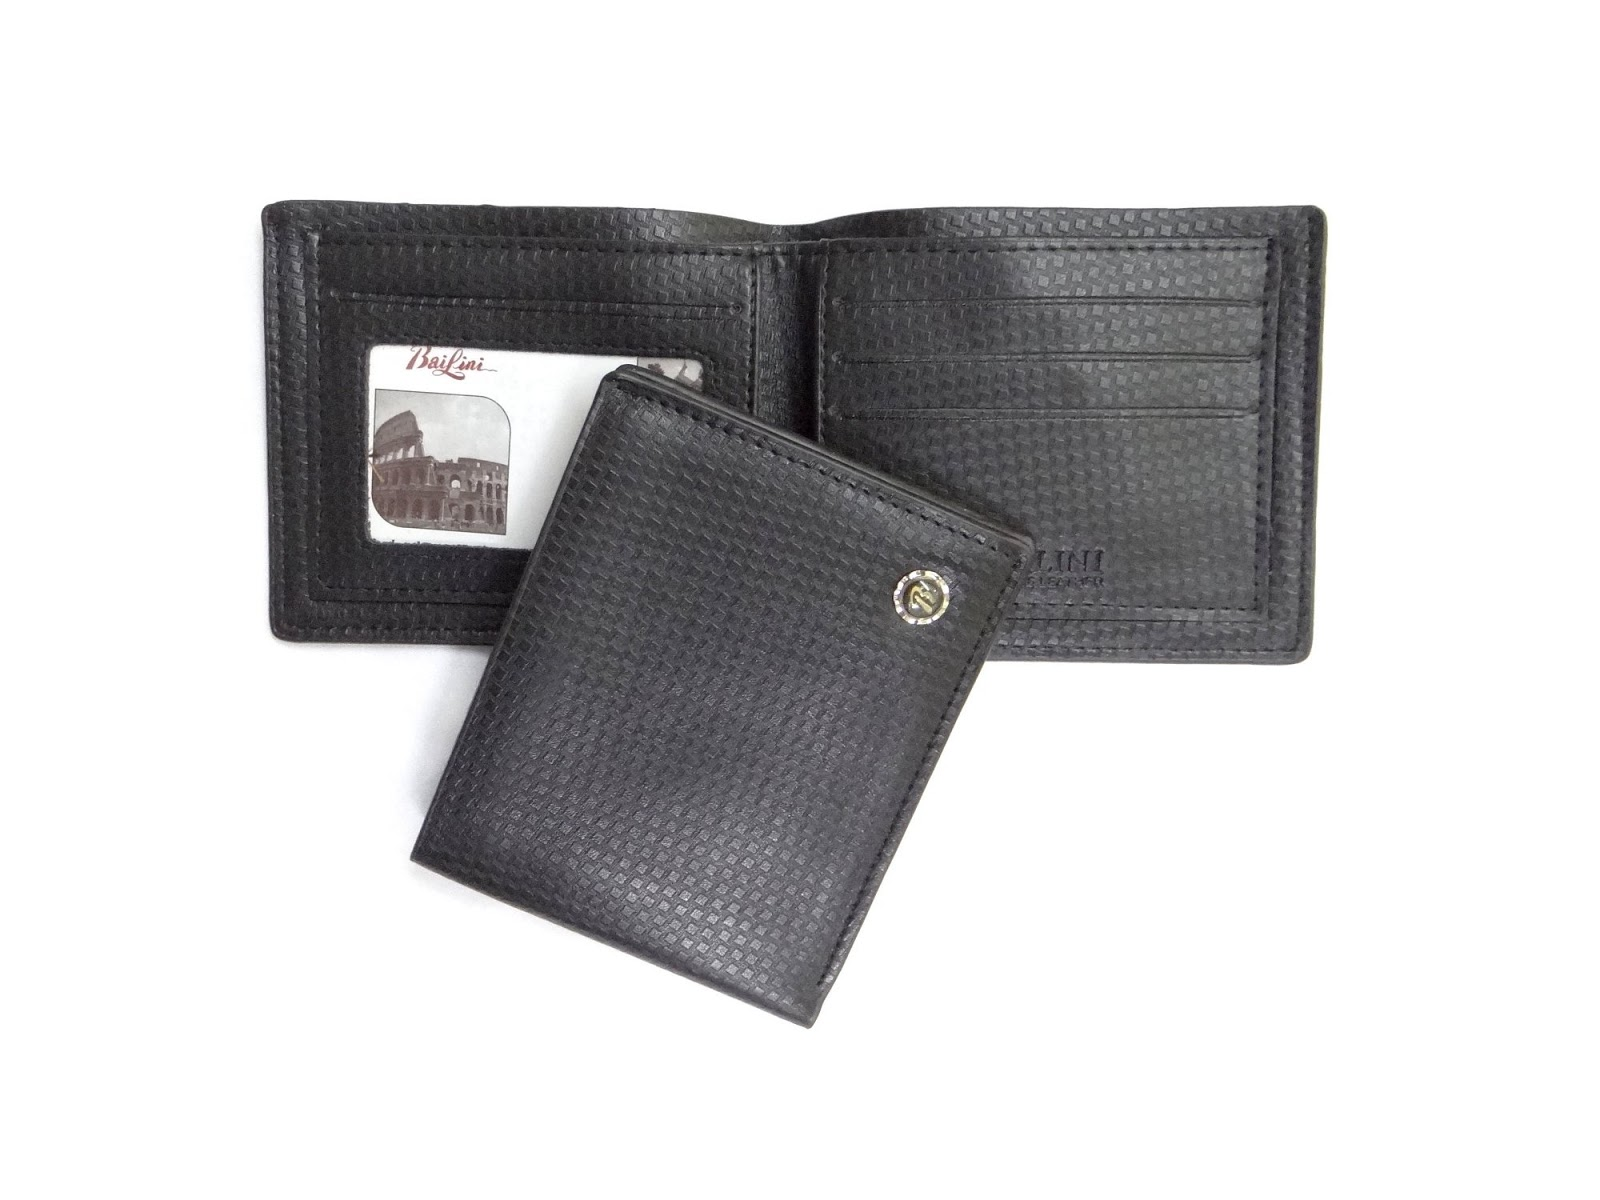 b4078bc1d1f8 Fuerdanni Men's Genuine Leather Wallet for just Rs. 124 - Deals & Offers